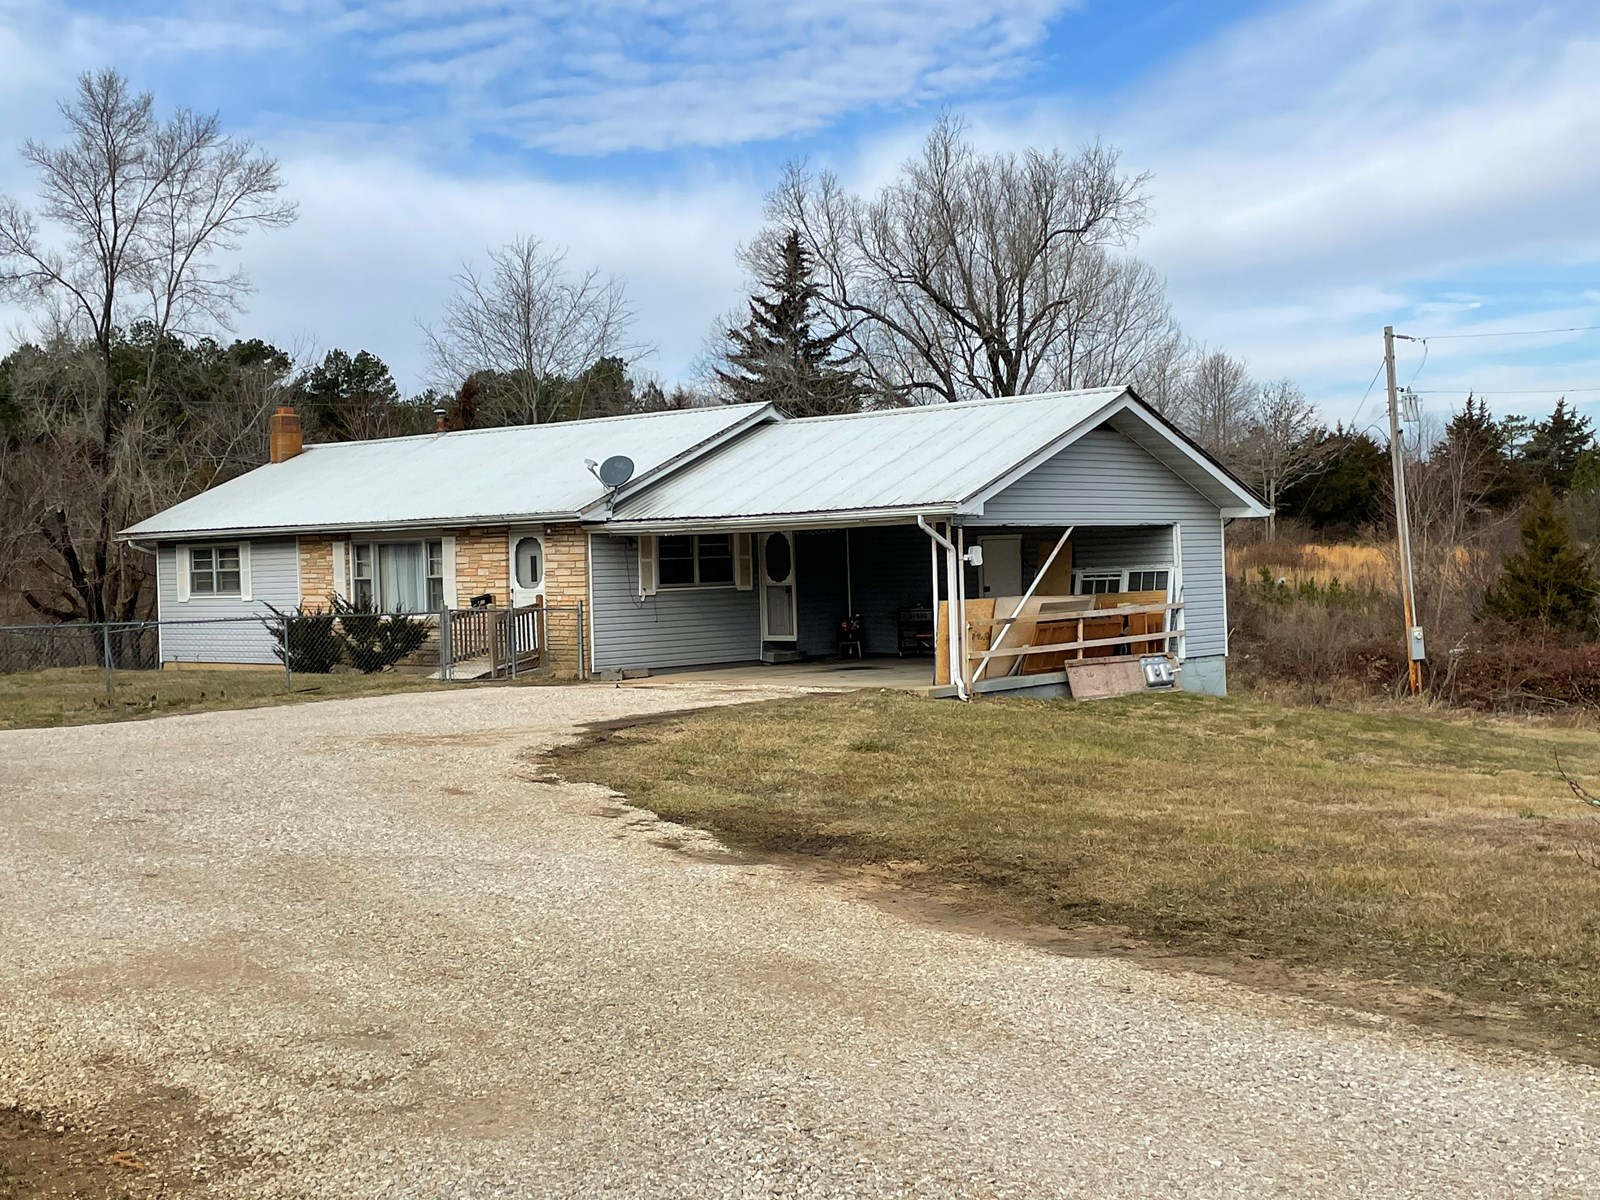 3 BEDROOM 1 BATH RANCHER FOR SALE IN WINONA MO-SHANNON CO